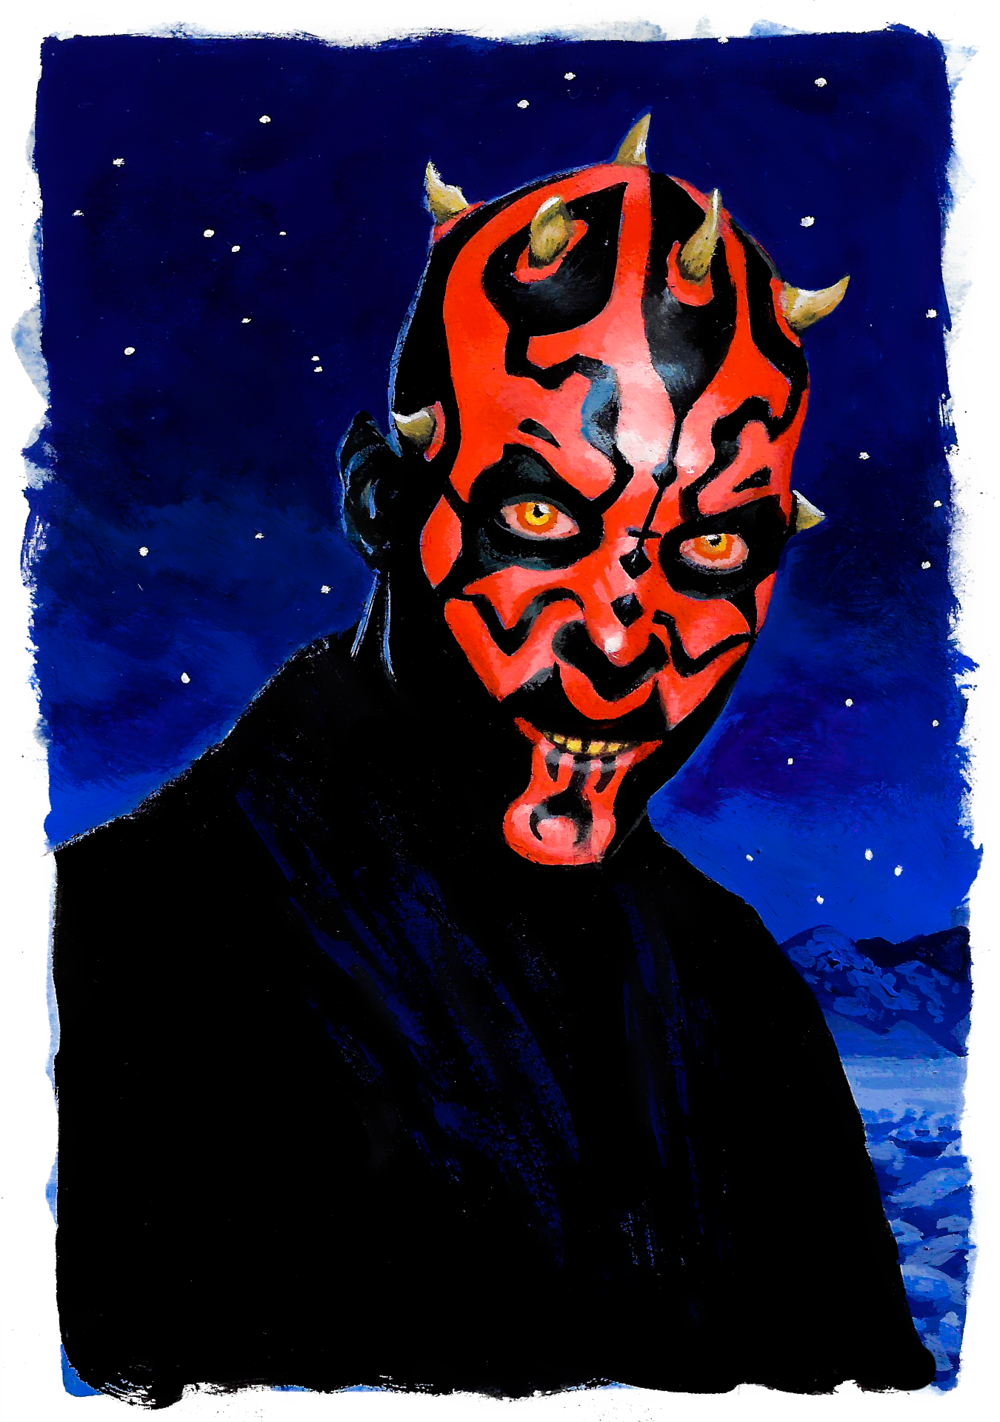 Darth Maul, casein on paper, 2017 (private commission)